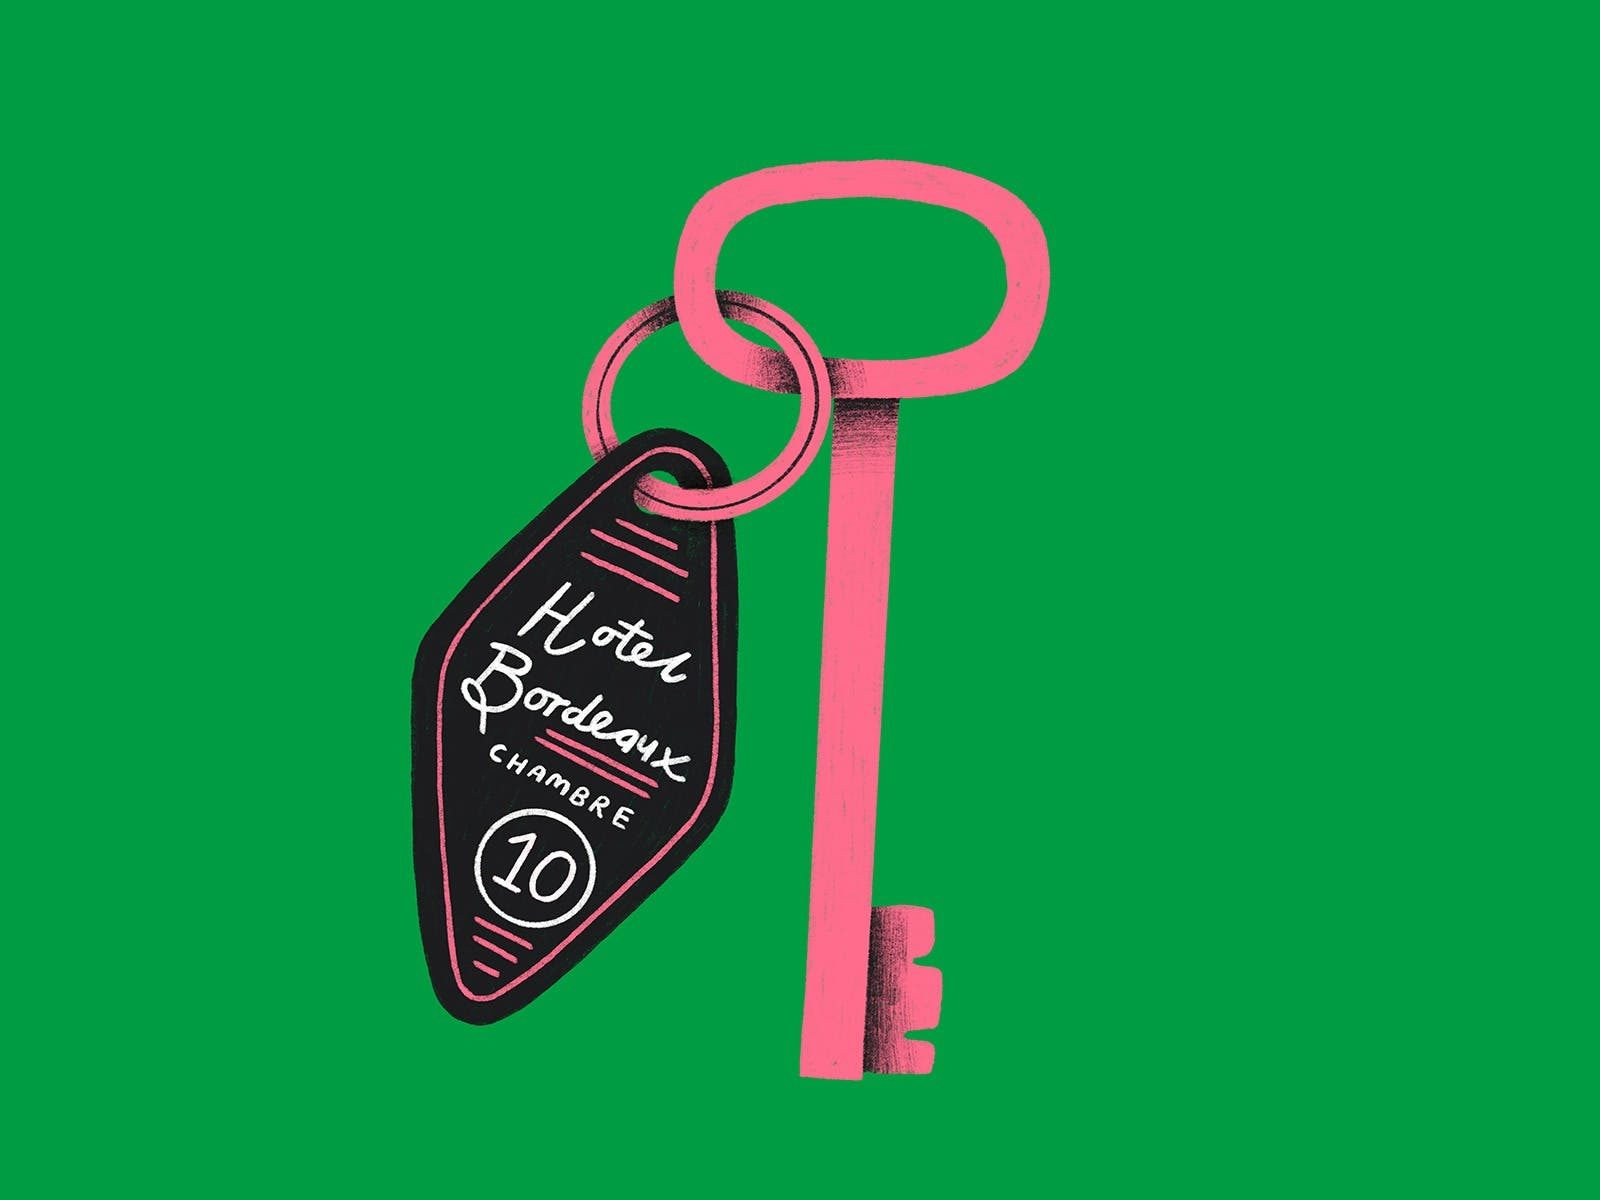 Pink hotel room key overlayed on green background